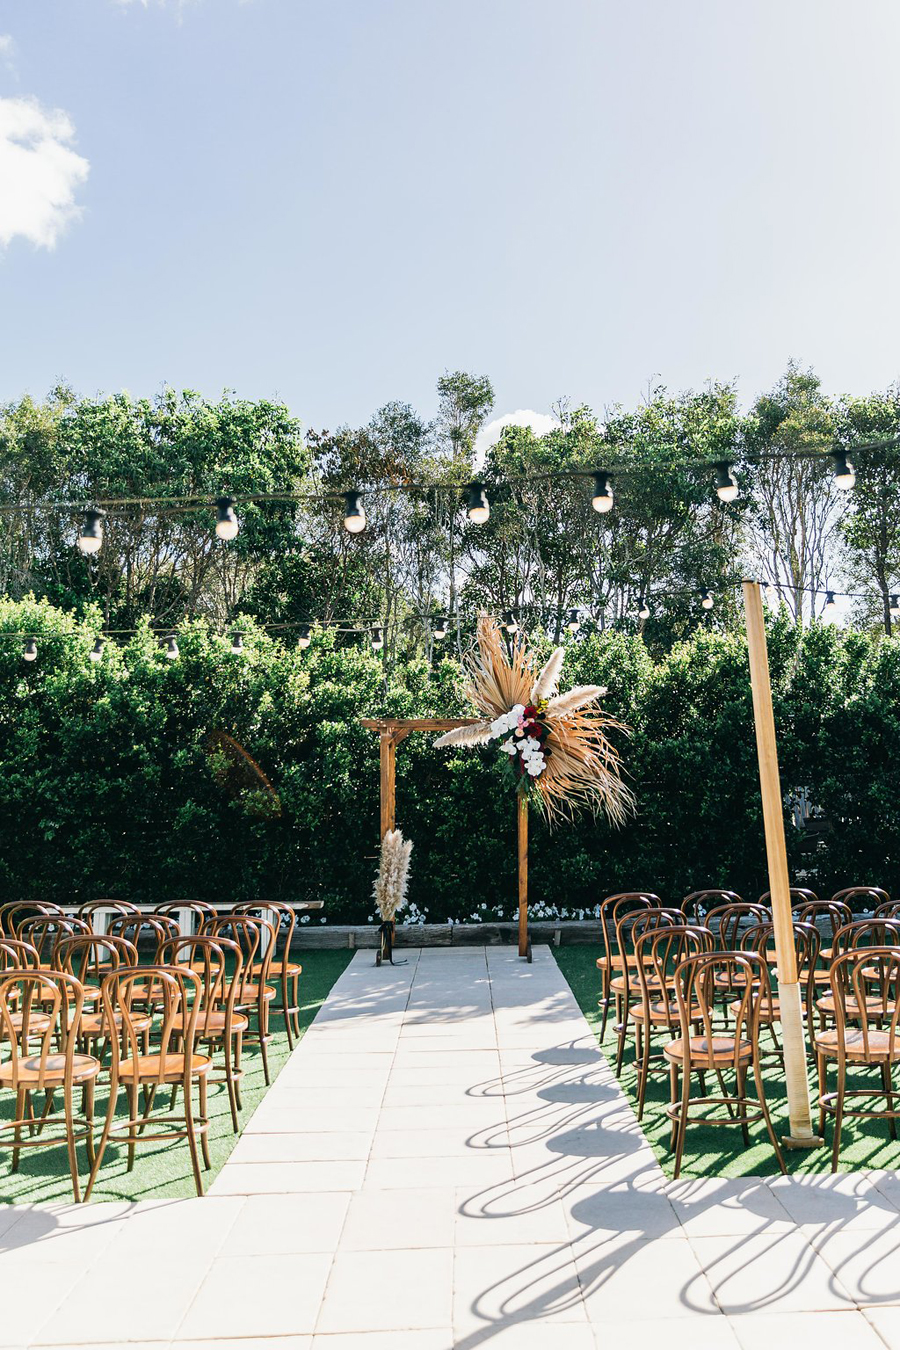 tweed-coast-weddings-wedding-venue-osteria-casuarina-garden-ceremony-reception-coastal-elyse-peter018.jpg